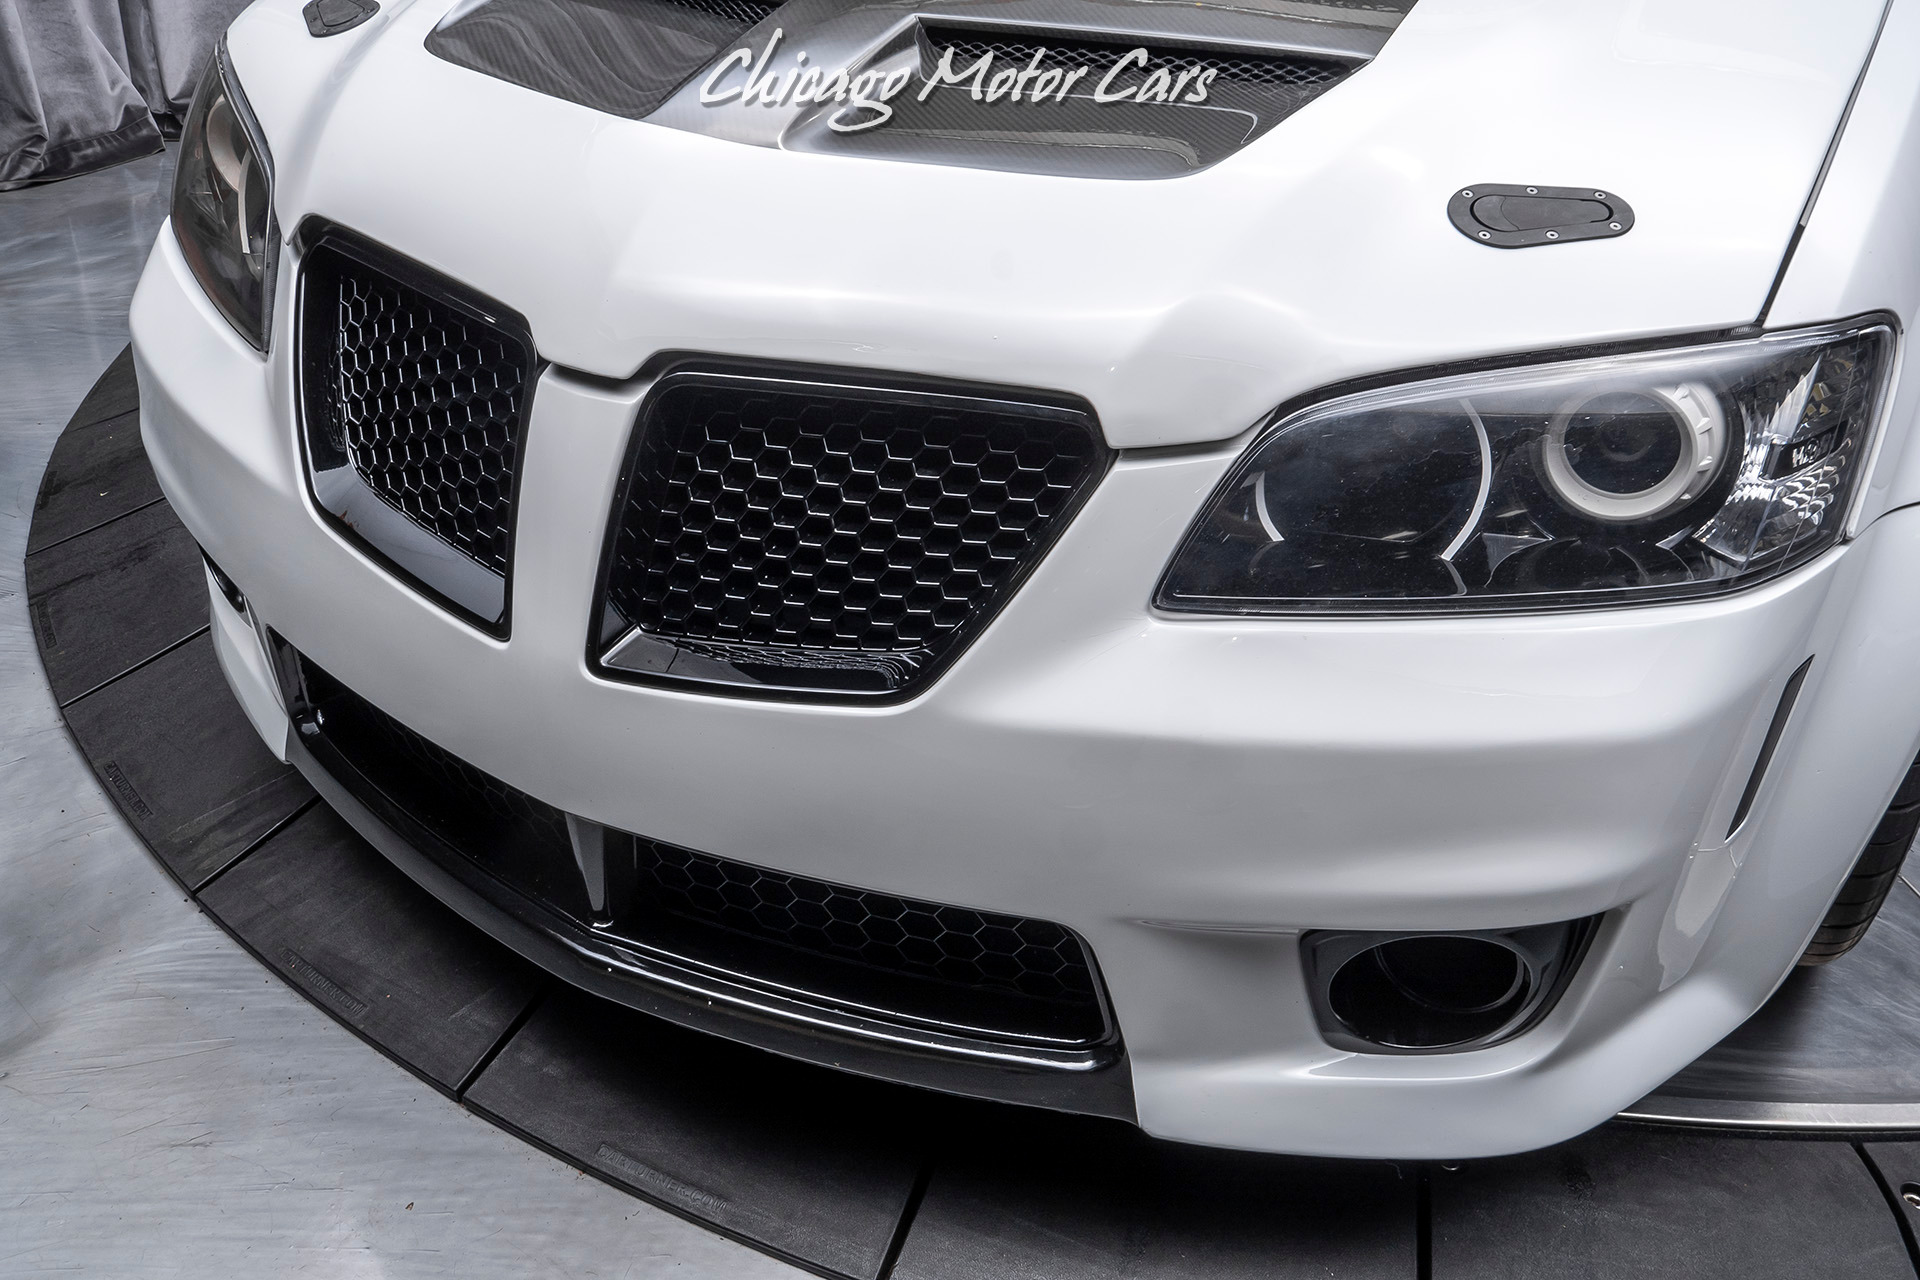 Used 2009 Pontiac G8 Supercharged 6 0 V8 900 Hp For Sale 27 800 Chicago Motor Cars Stock 9l189339